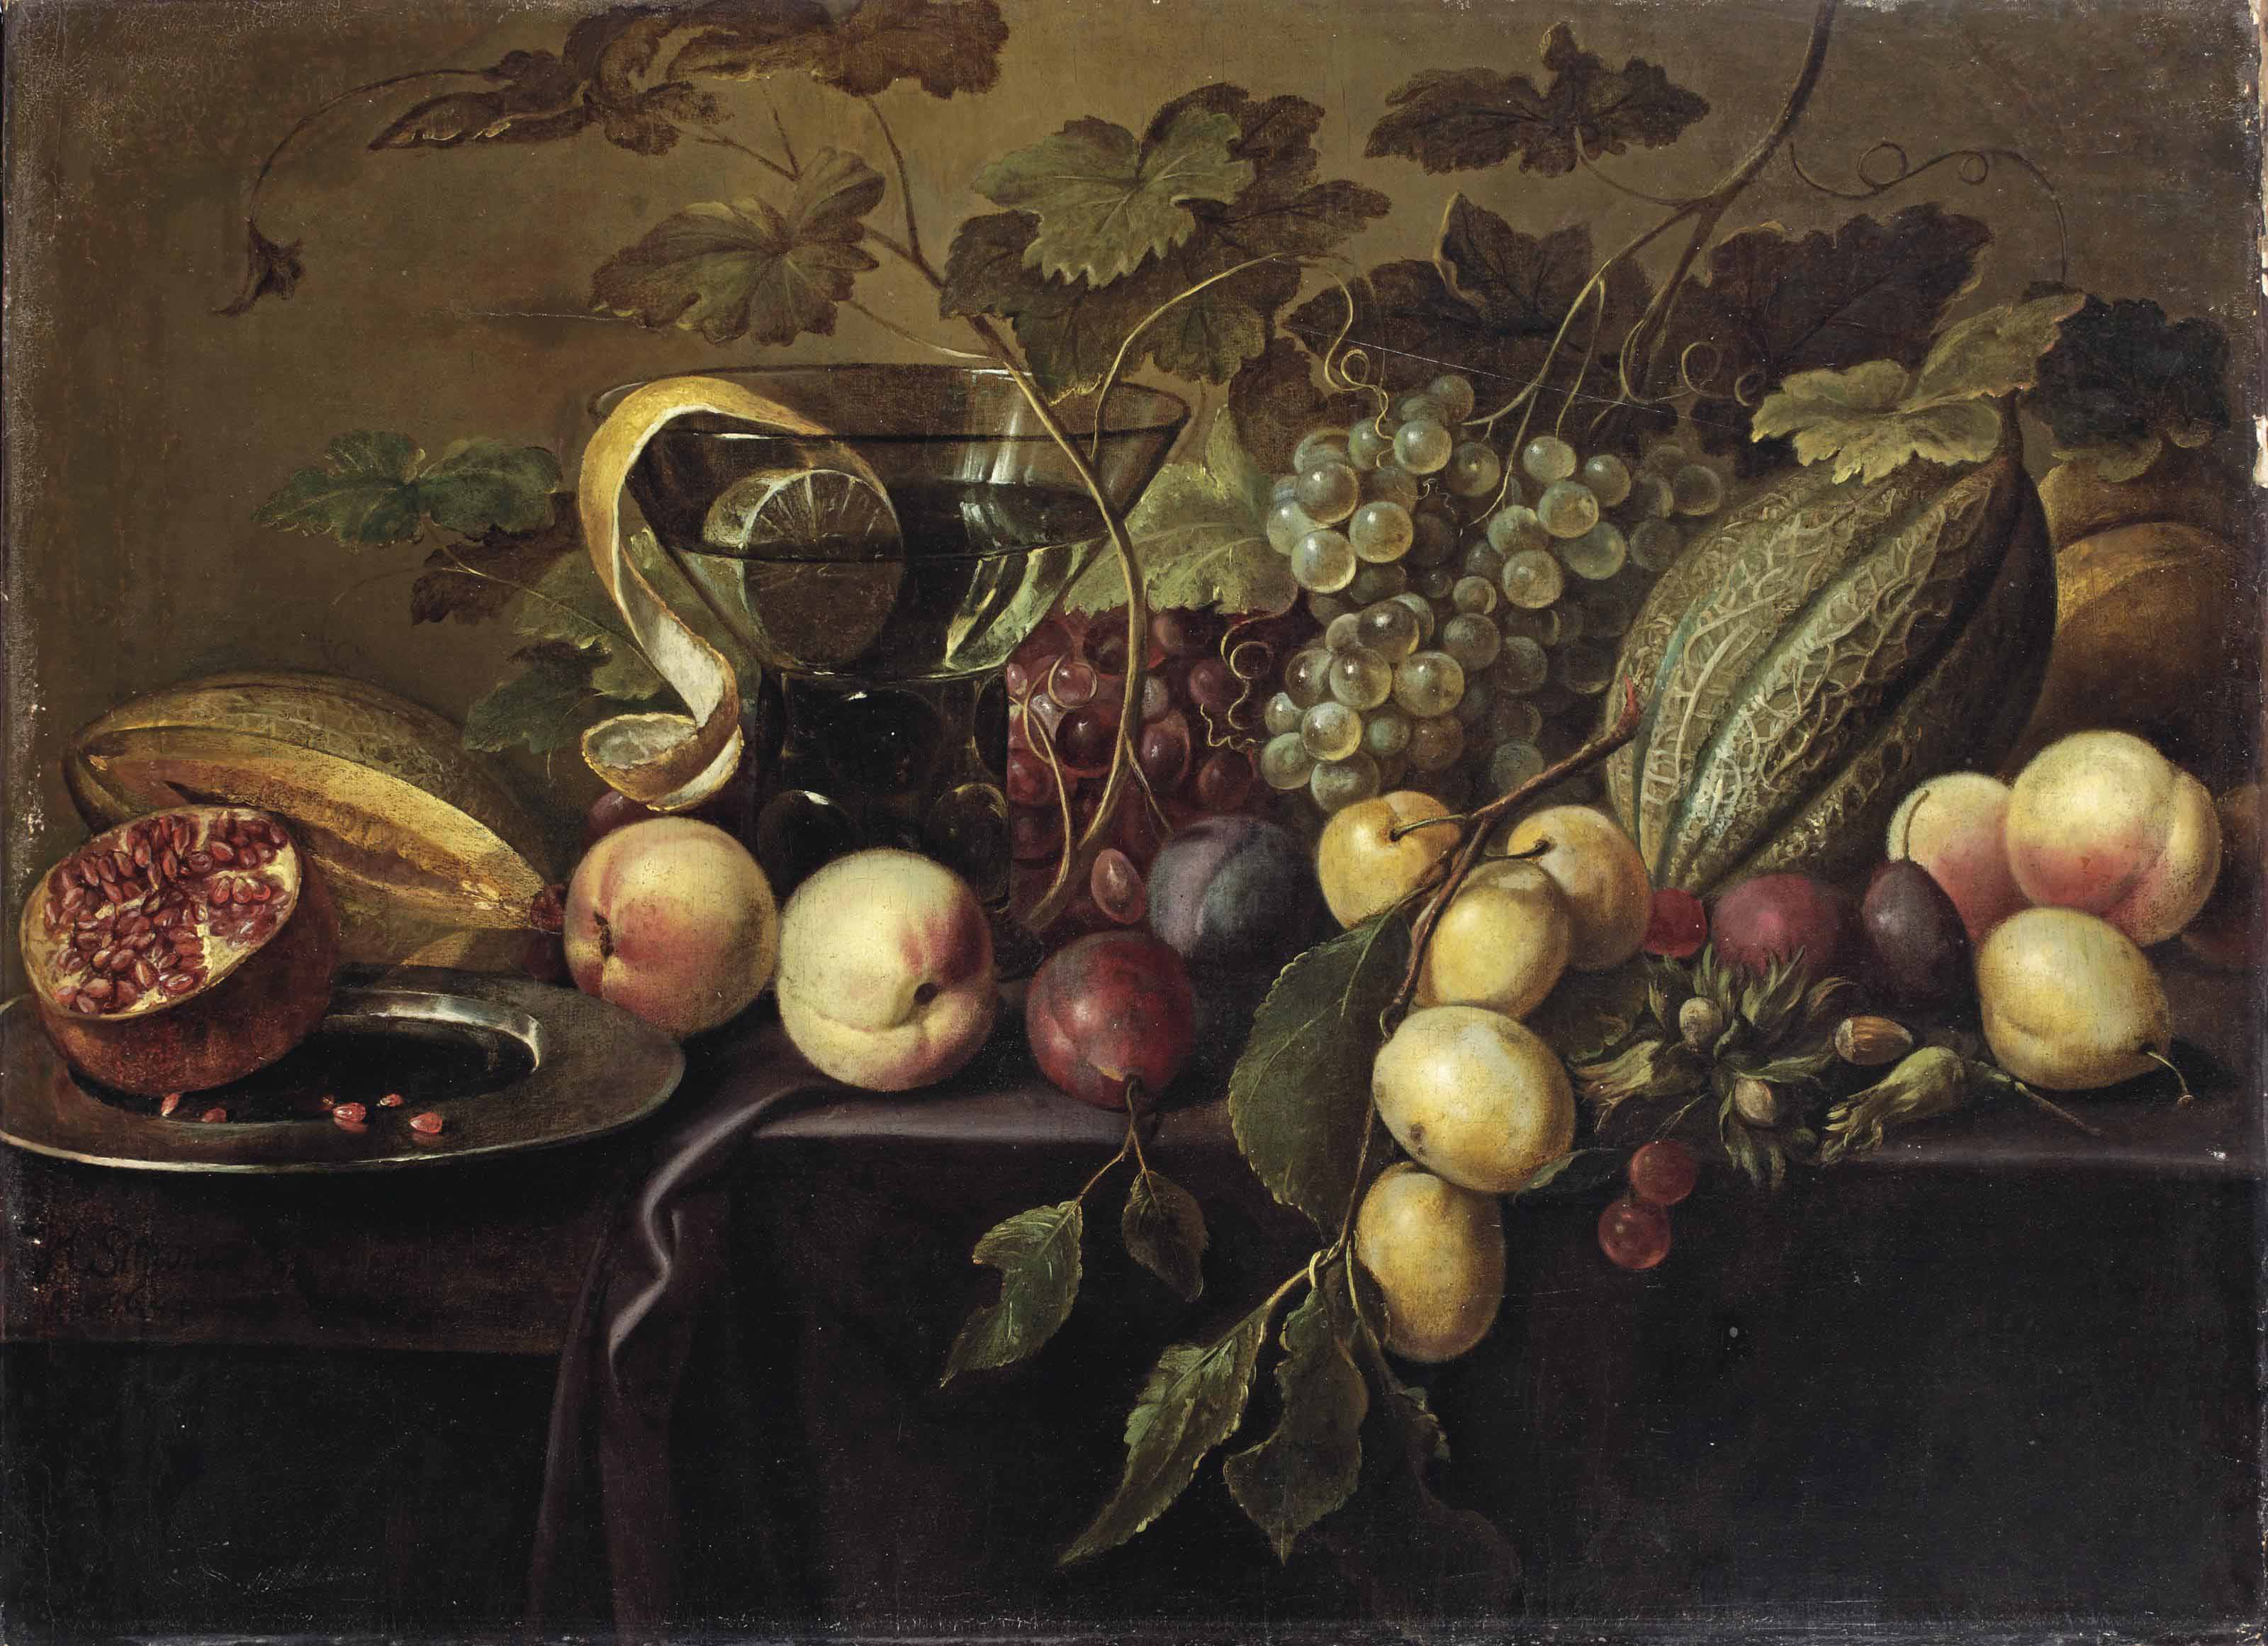 Plums, peaches, grapes, melons, a half pomegranate, and a peeled lemon in a glass, all on a partially draped table